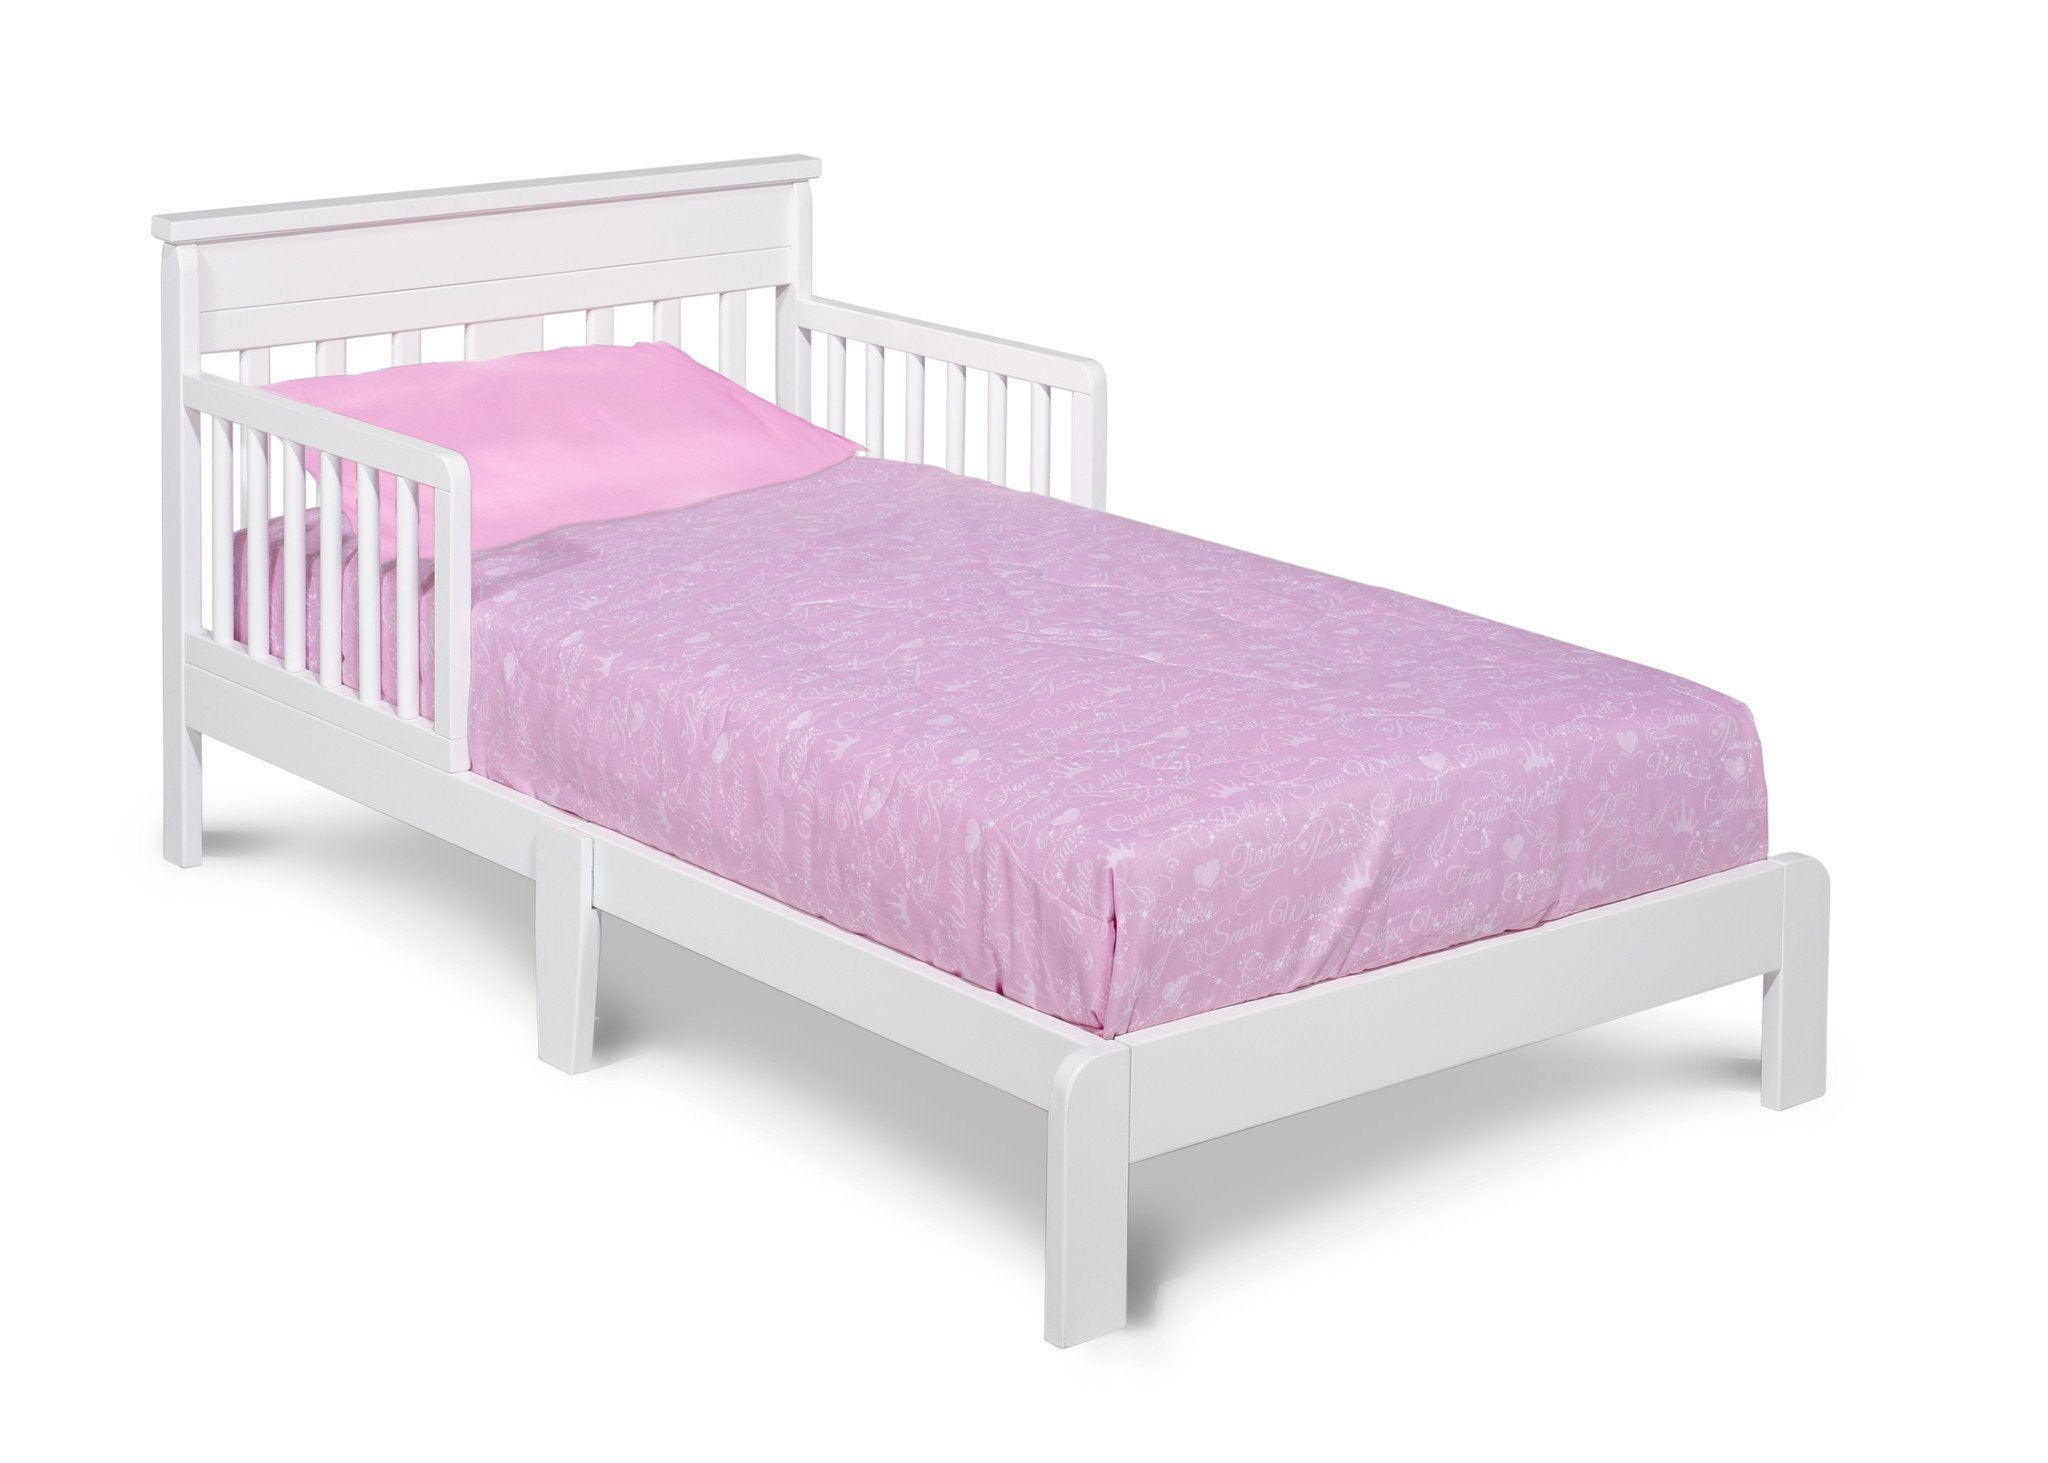 Delta Children White (100) Scottsdale Toddler Bed, Right Side View a1a